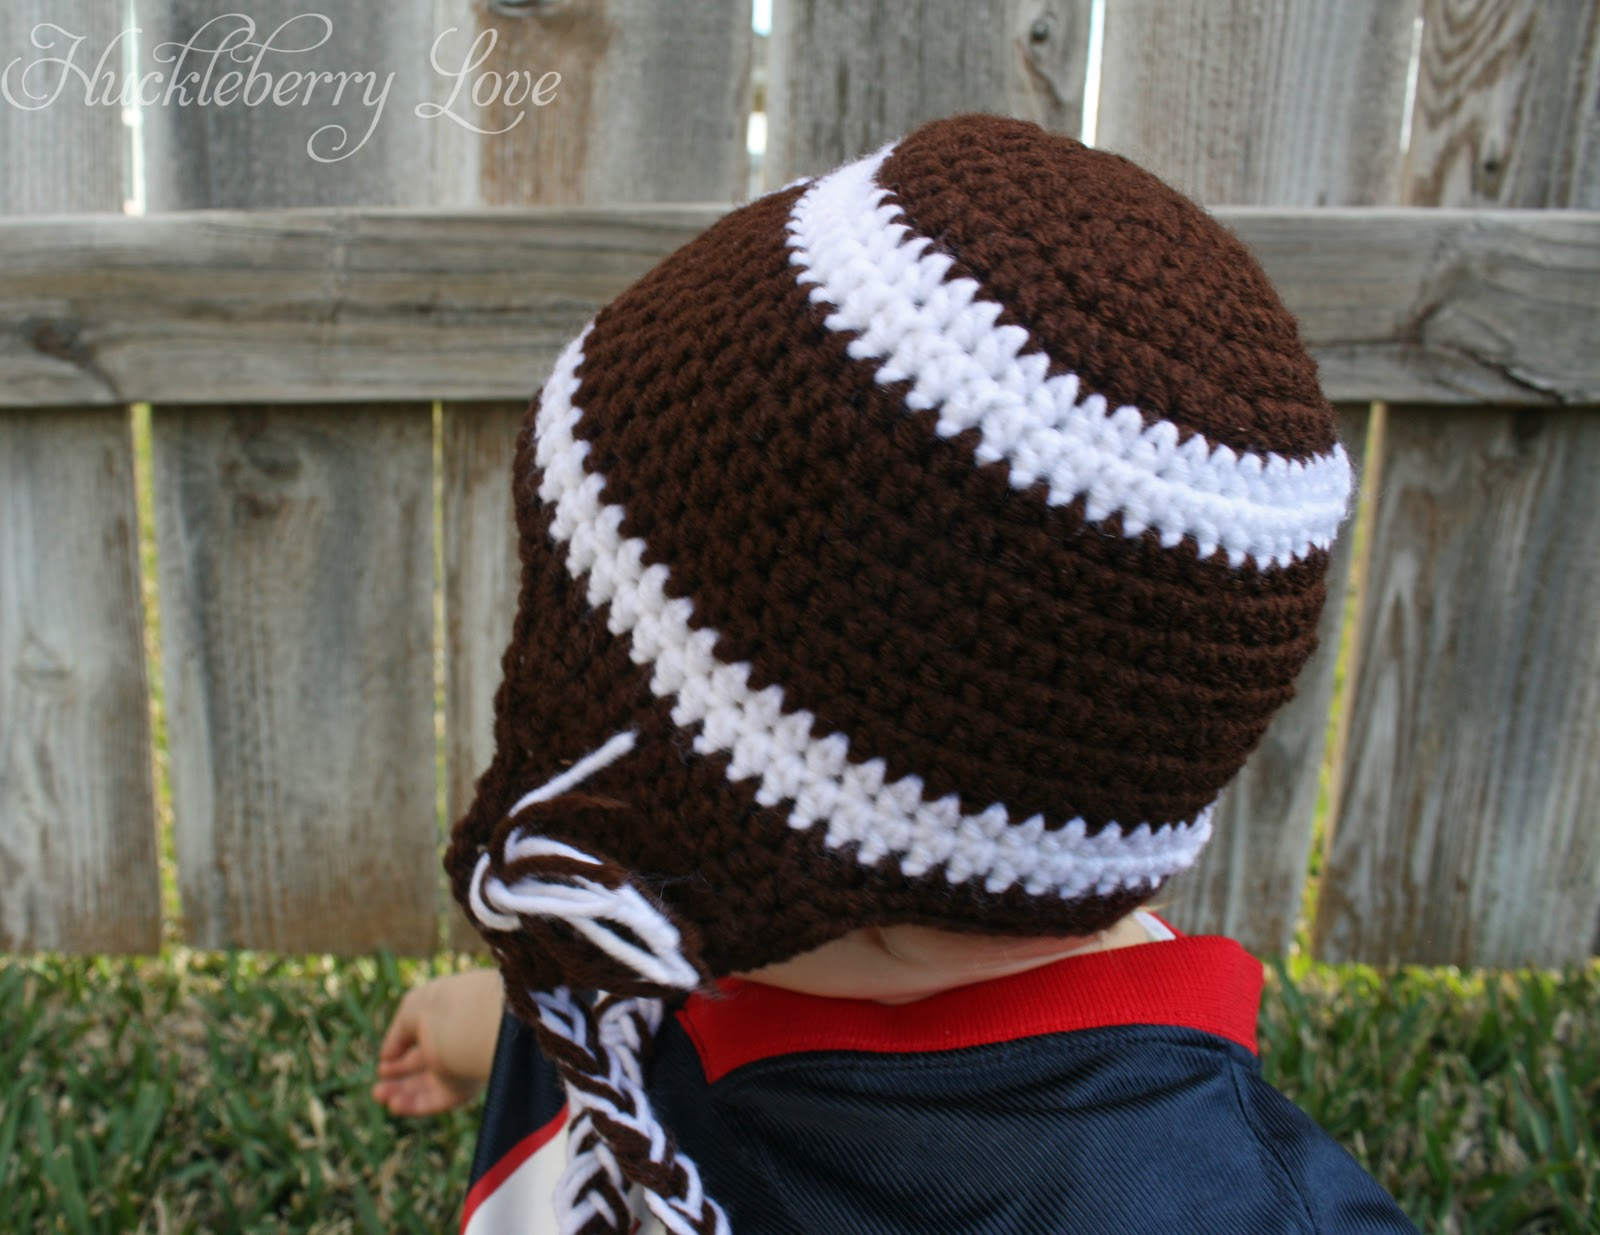 Free crochet pattern for football hat manet for huckleberry love crochet football hat w earflaps free bankloansurffo Choice Image